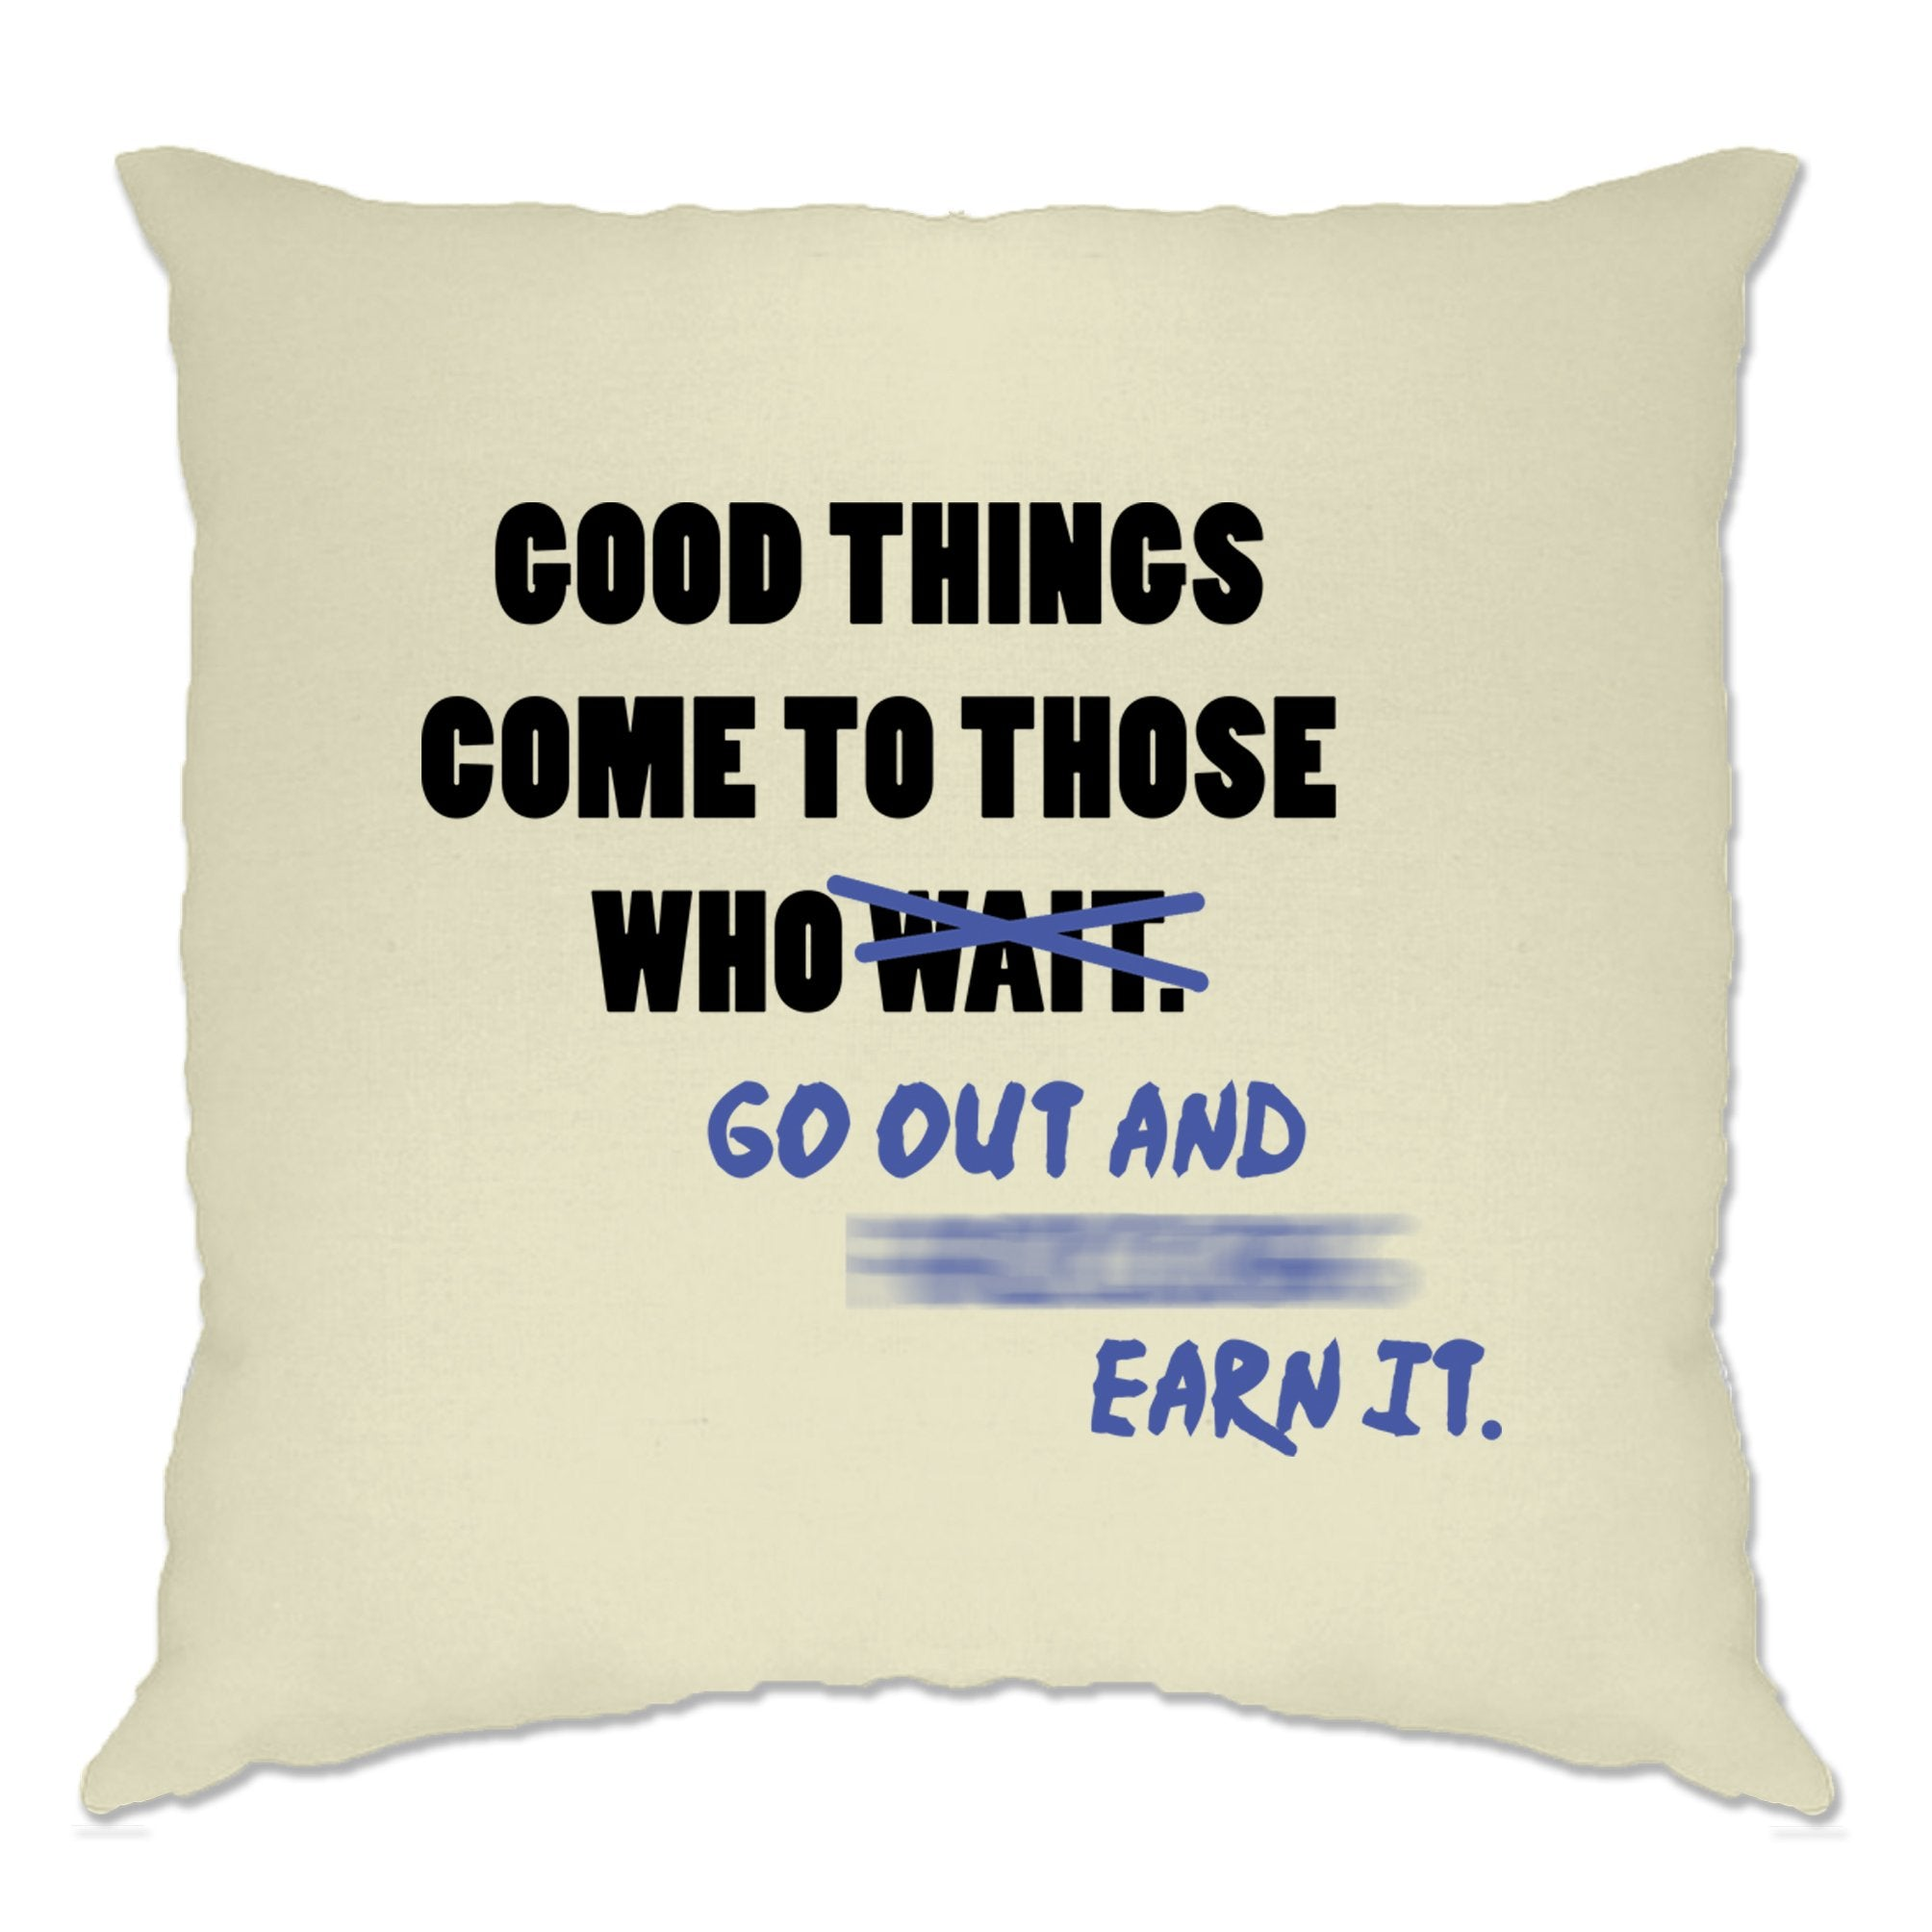 Motivational Good Things Cushion Cover Go Out And Earn It